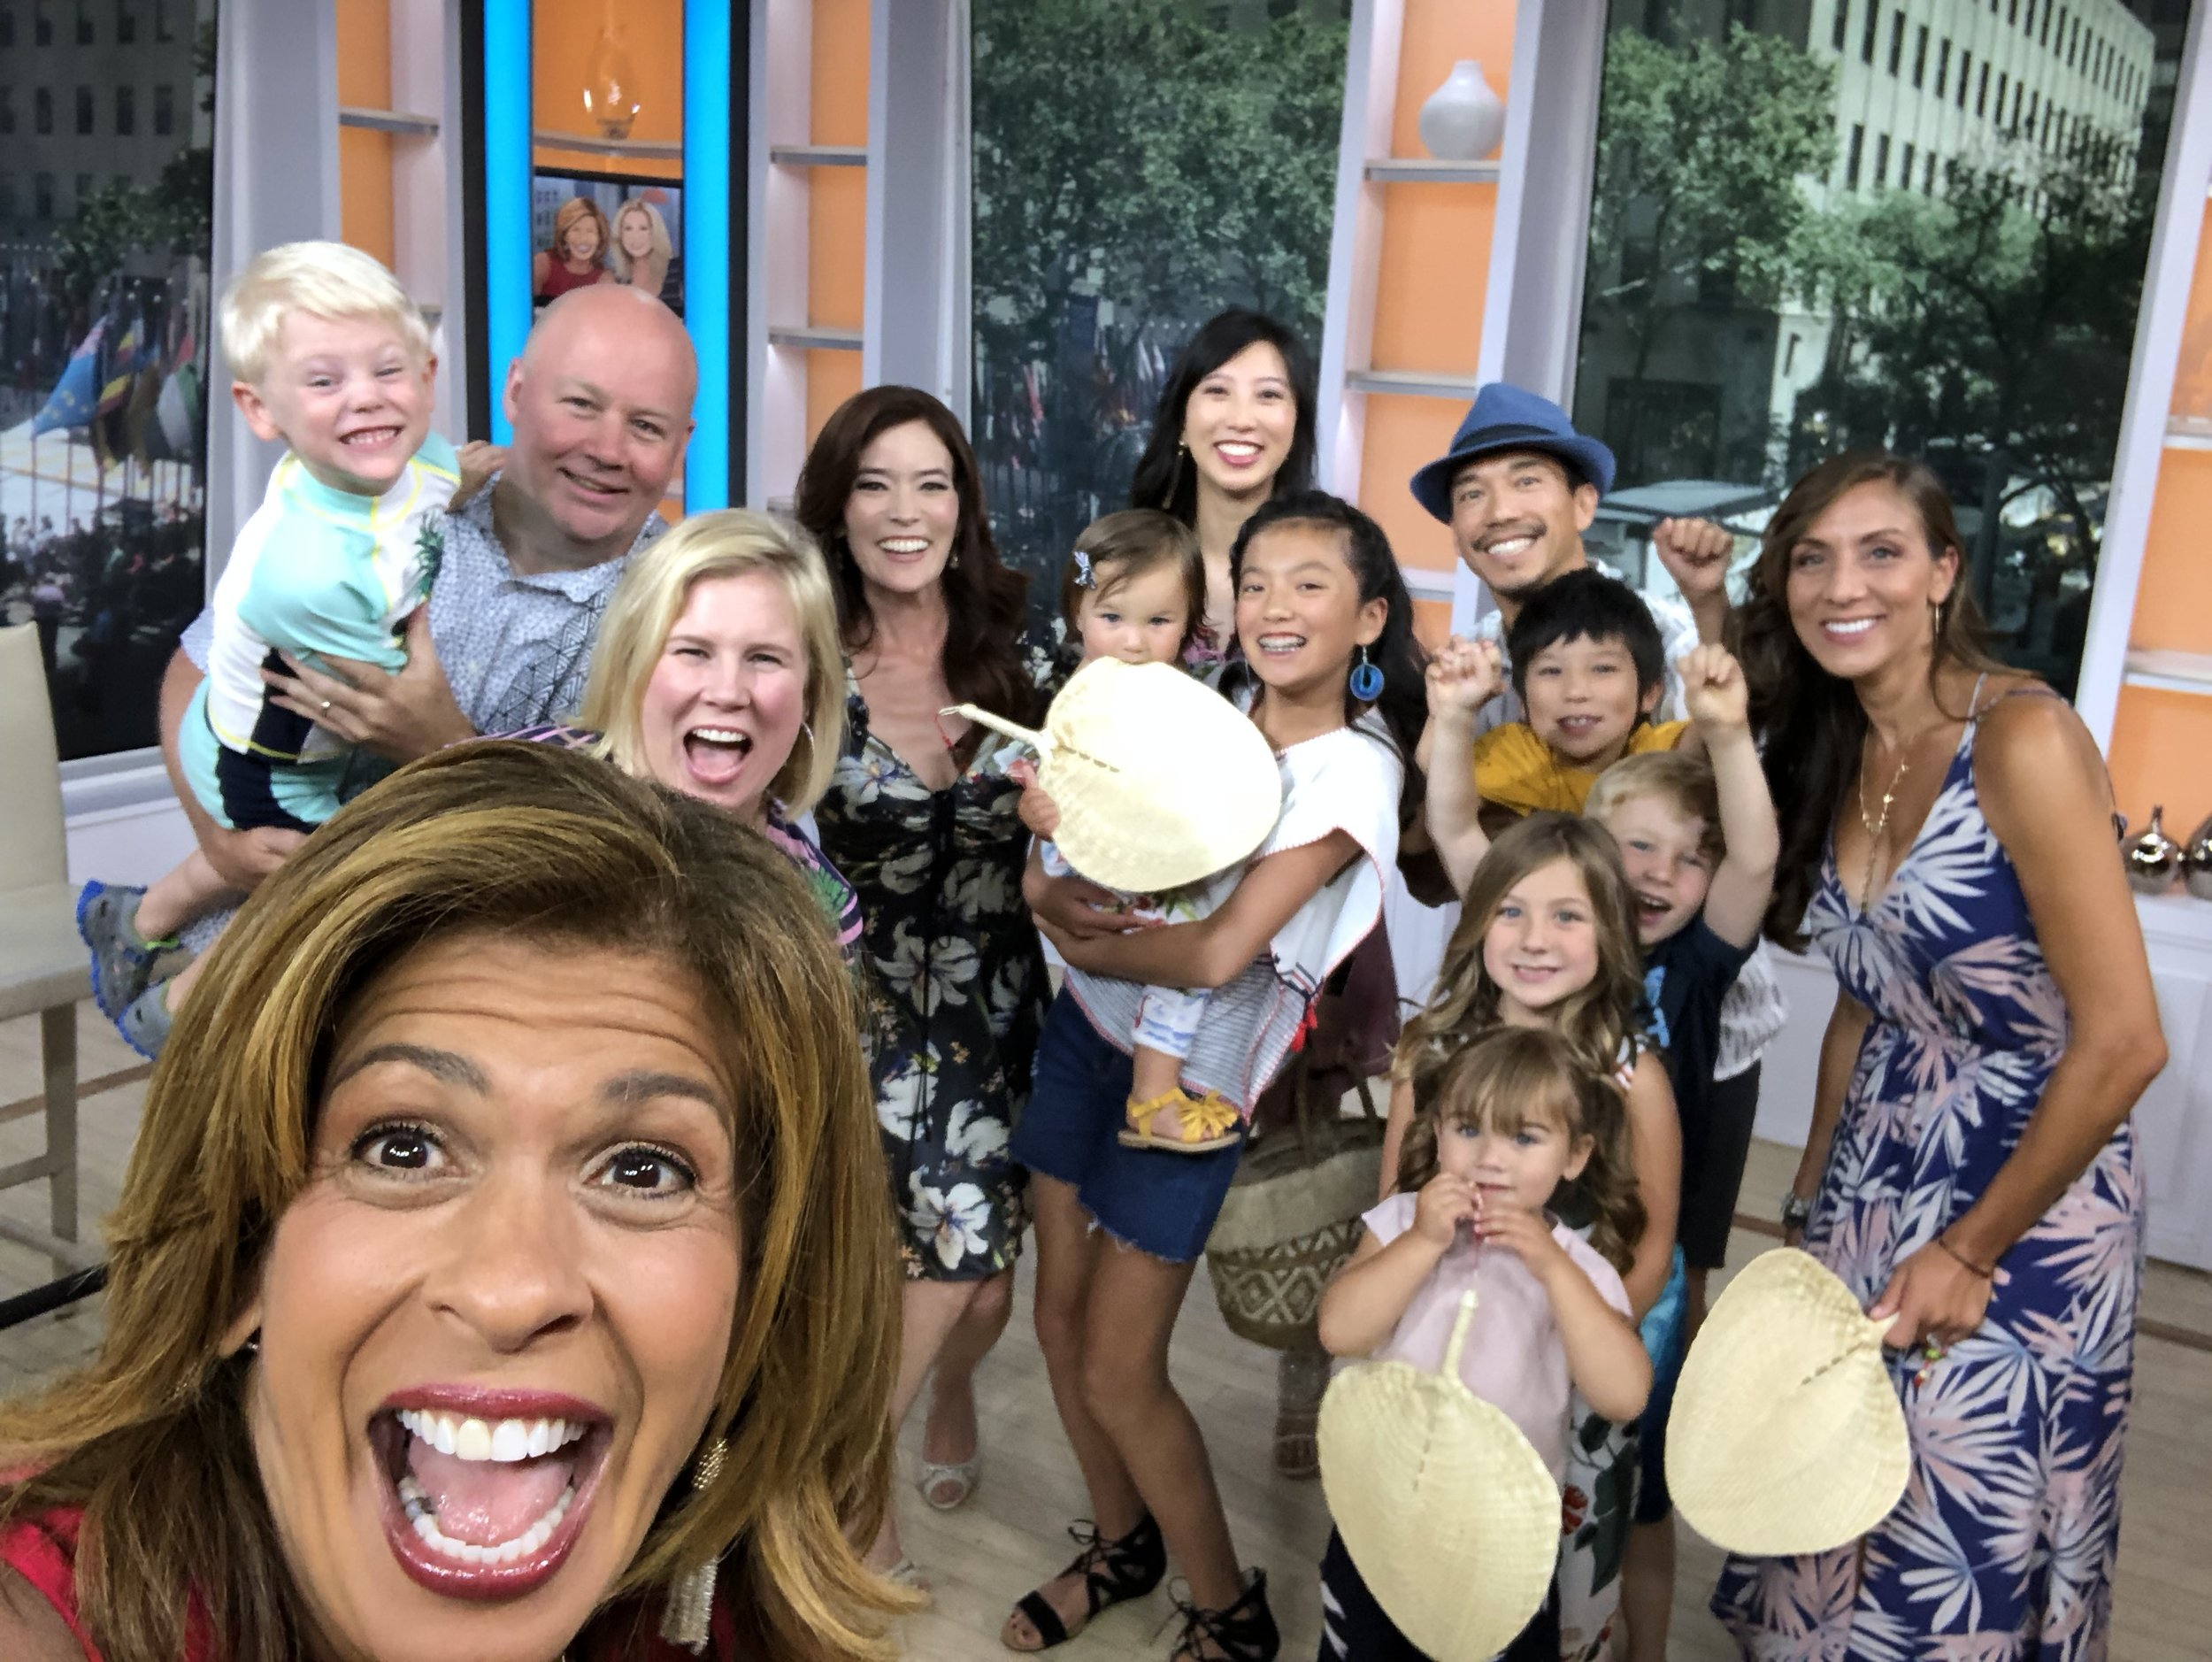 Taped on #nationalselfieday a fun selfie with Today co-host Hoda Kotb!